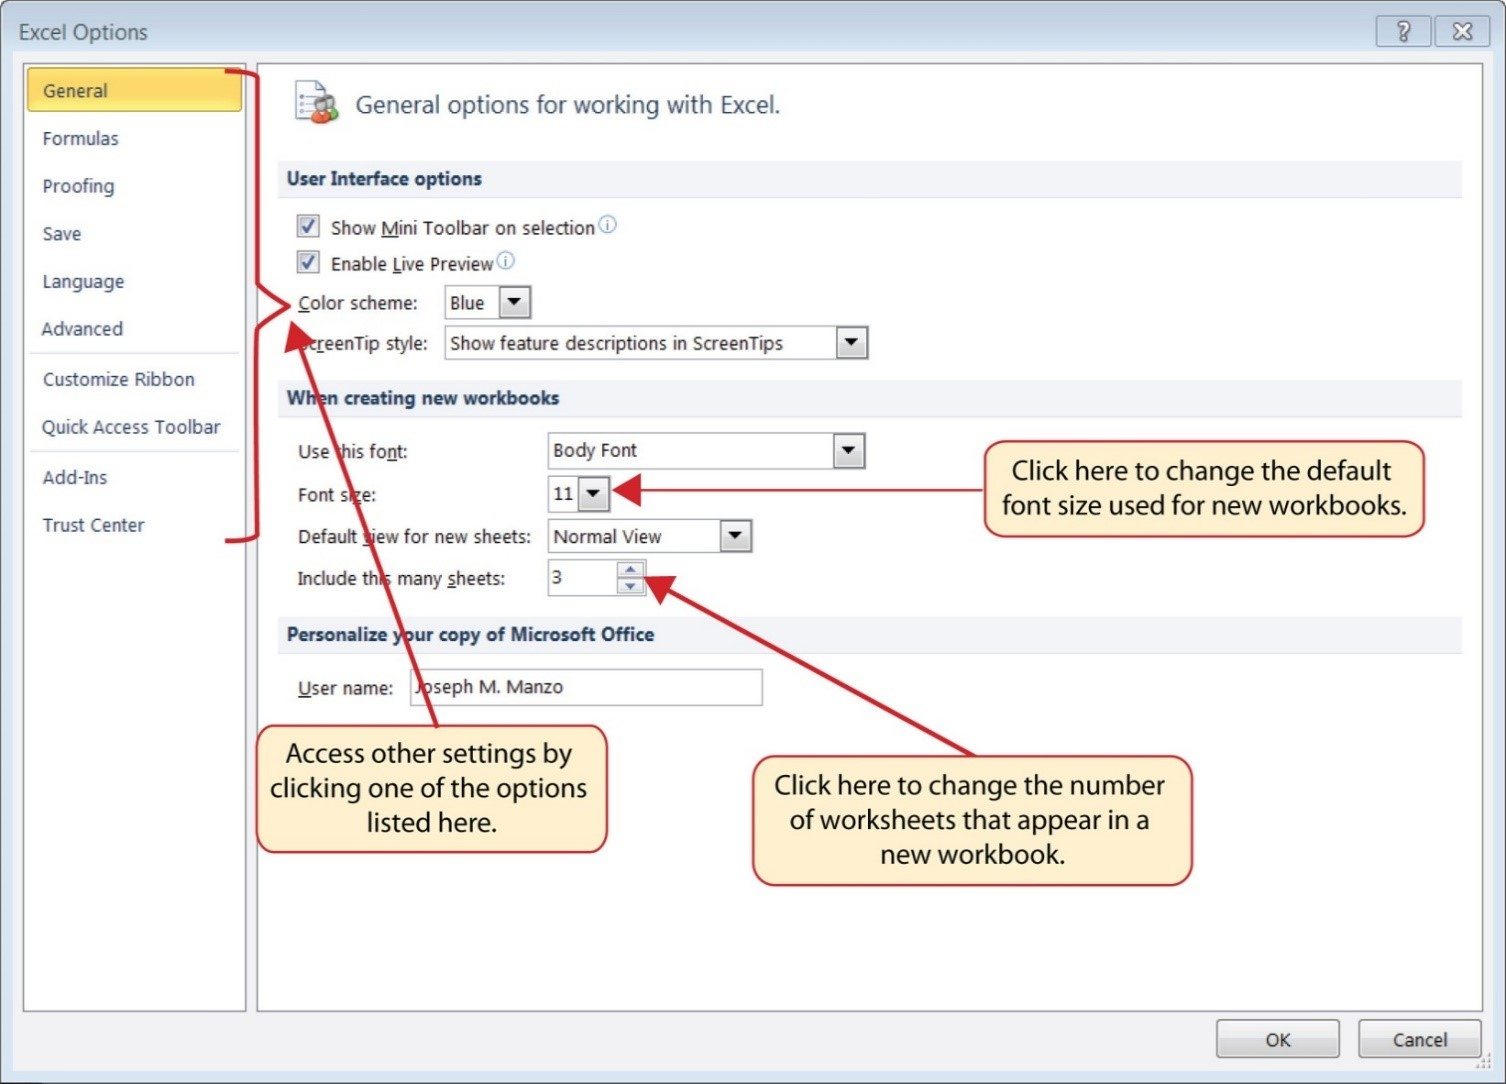 Options window General tab: Font size, number of worksheets in a workbook can be changed. Other Excel options are Formulas, Proofing, Save, Language, Advanced, Customize Ribbon, Quick Access Toolbar, Add-Ins, Trust Center.